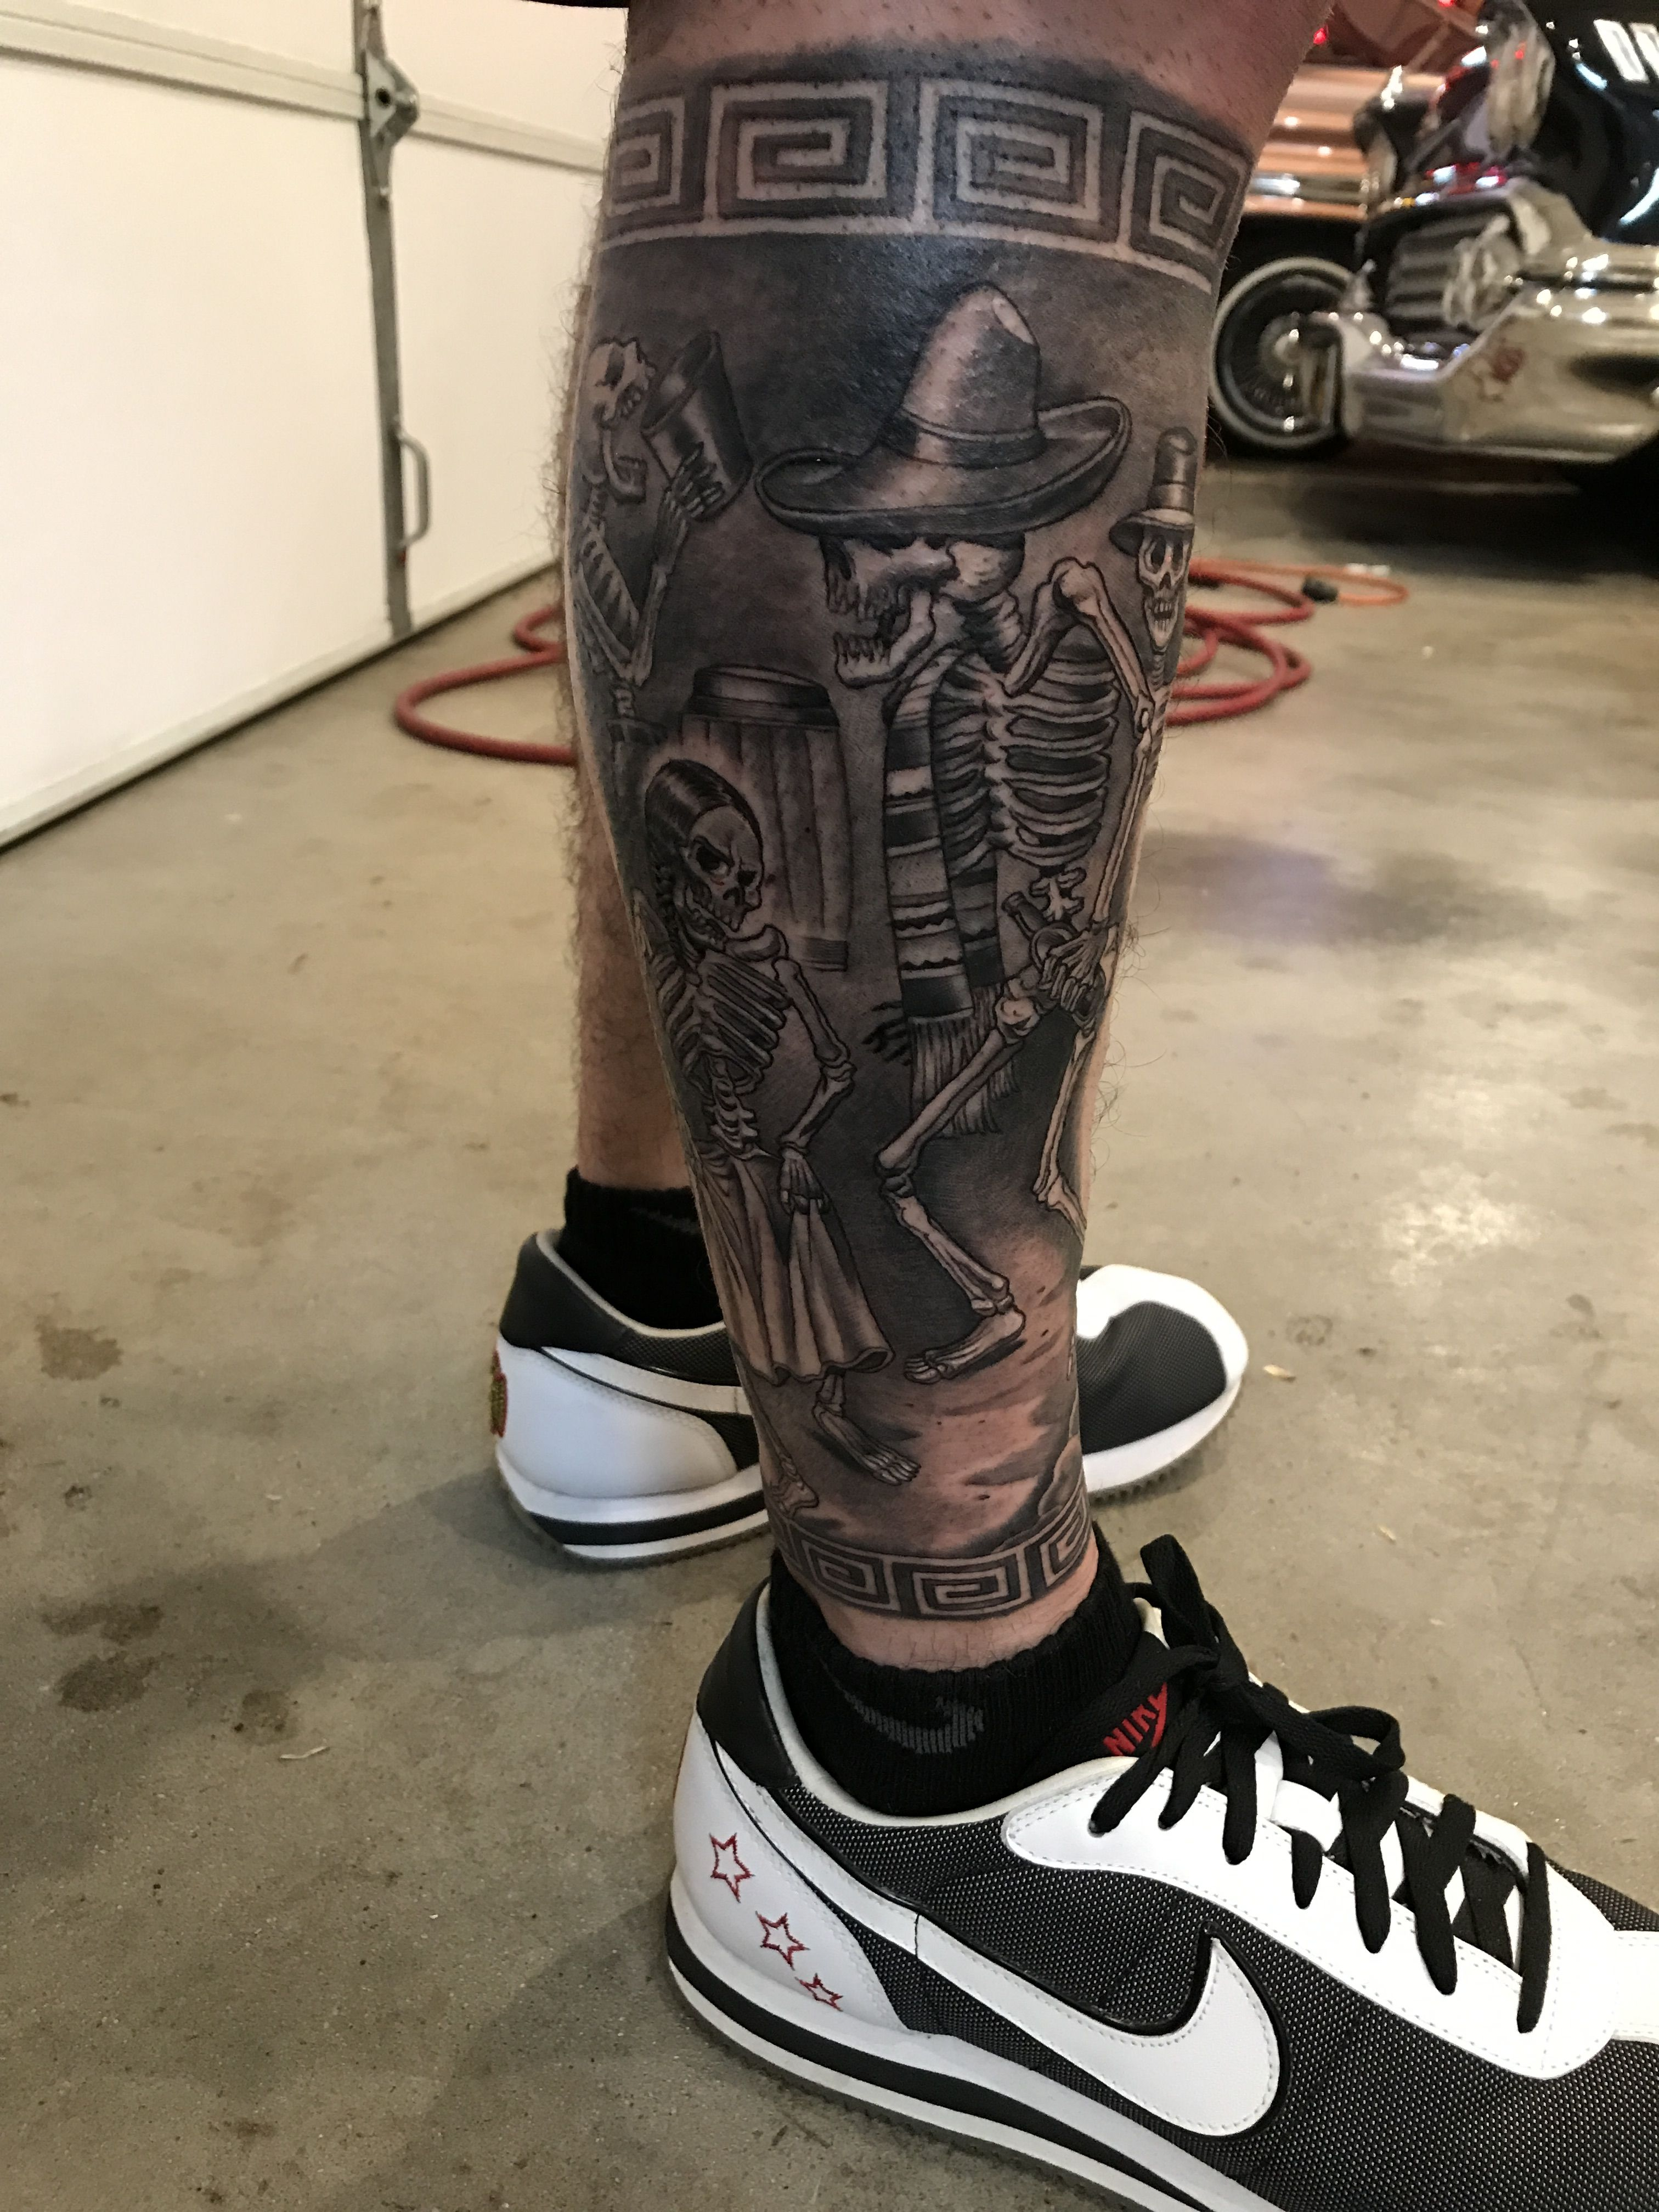 Muertitos Themed Leg Sleeve Aztec Tattoos Sleeve Sleeve Tattoos